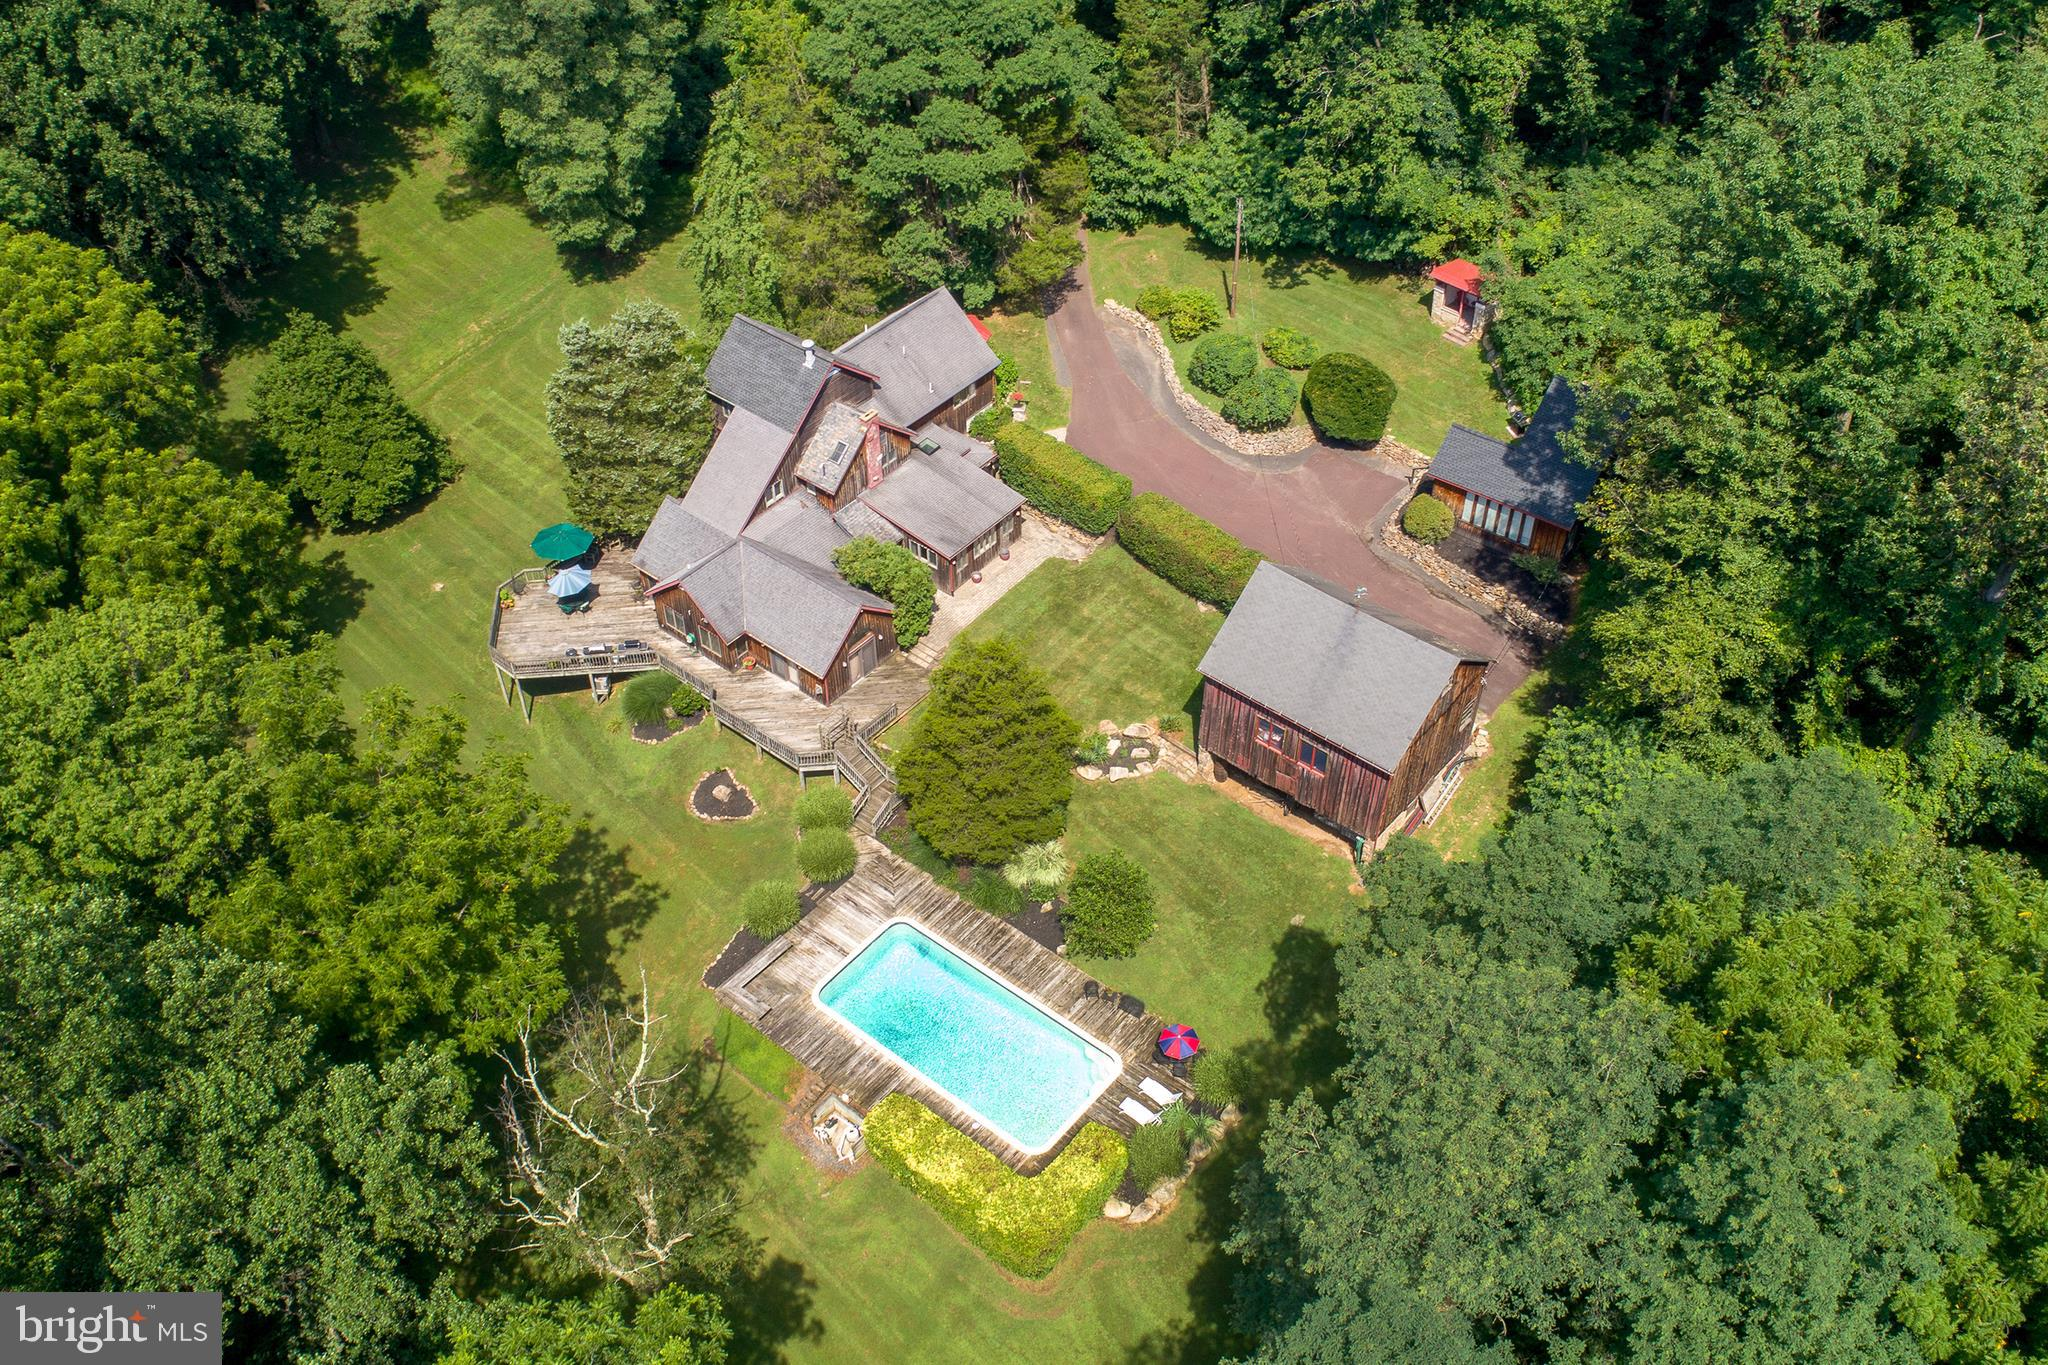 405 COUNTY LINE ROAD, RIEGELSVILLE, PA 18077